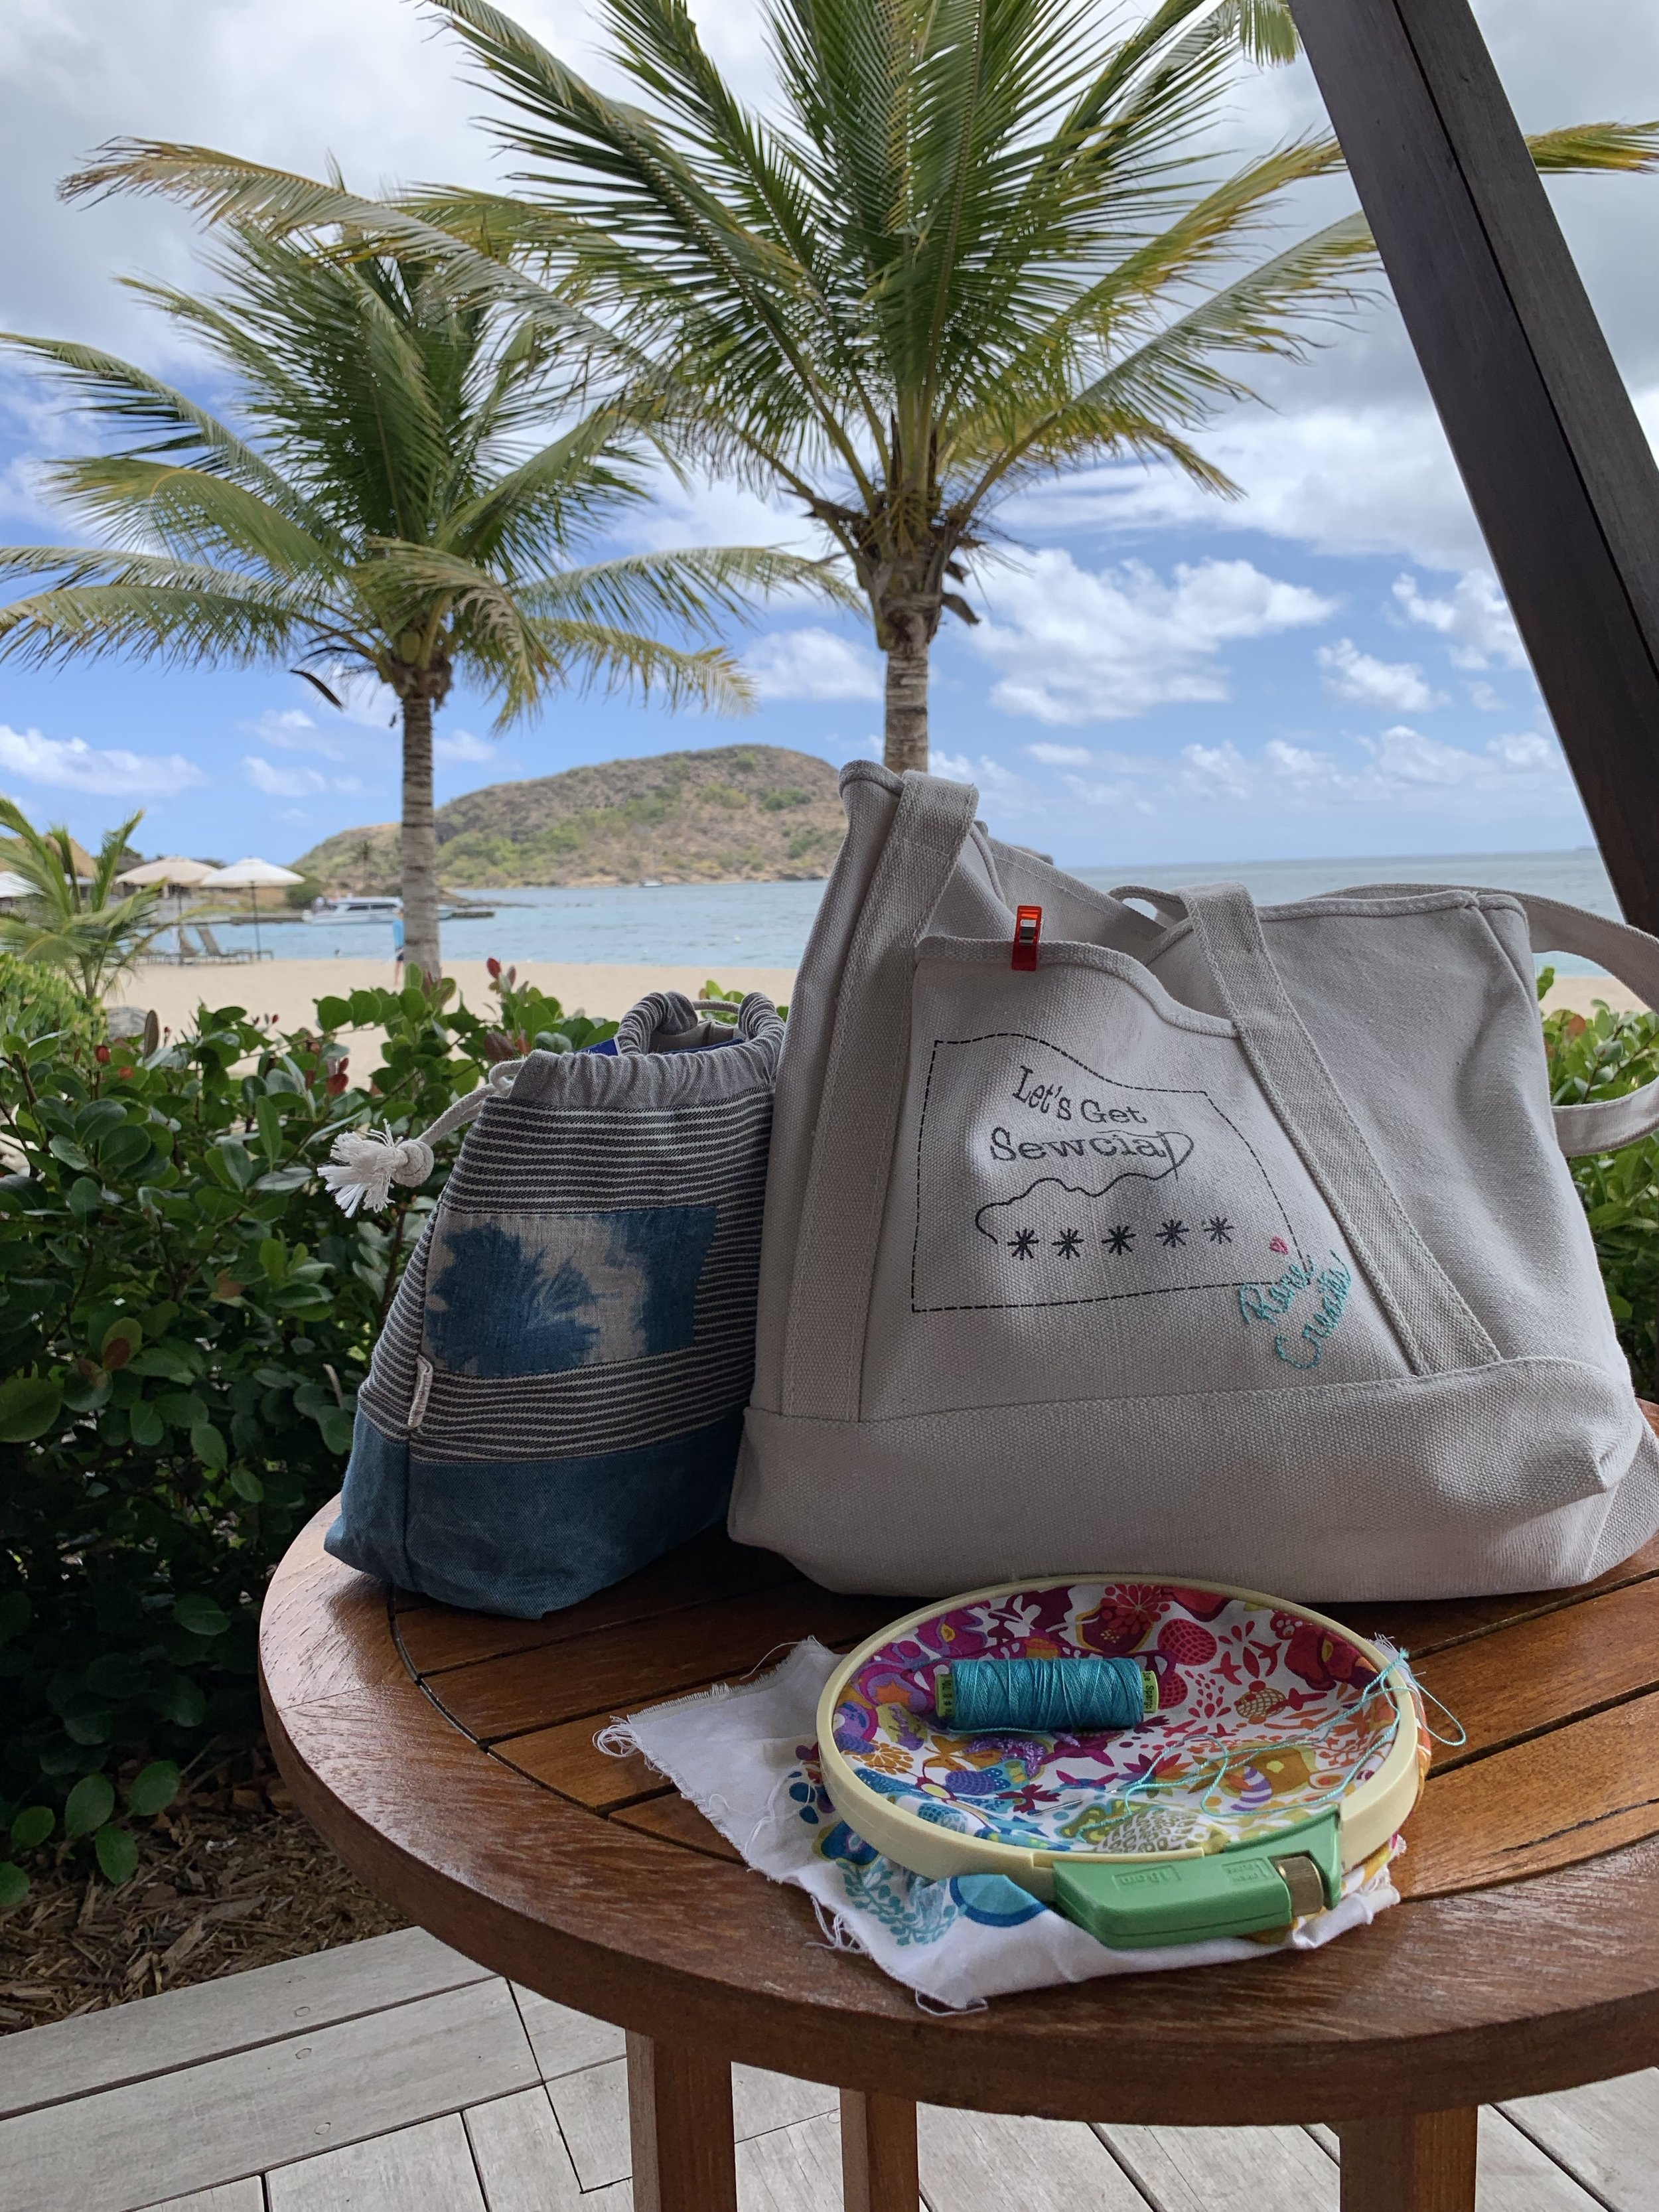 What a spot for embroidering!